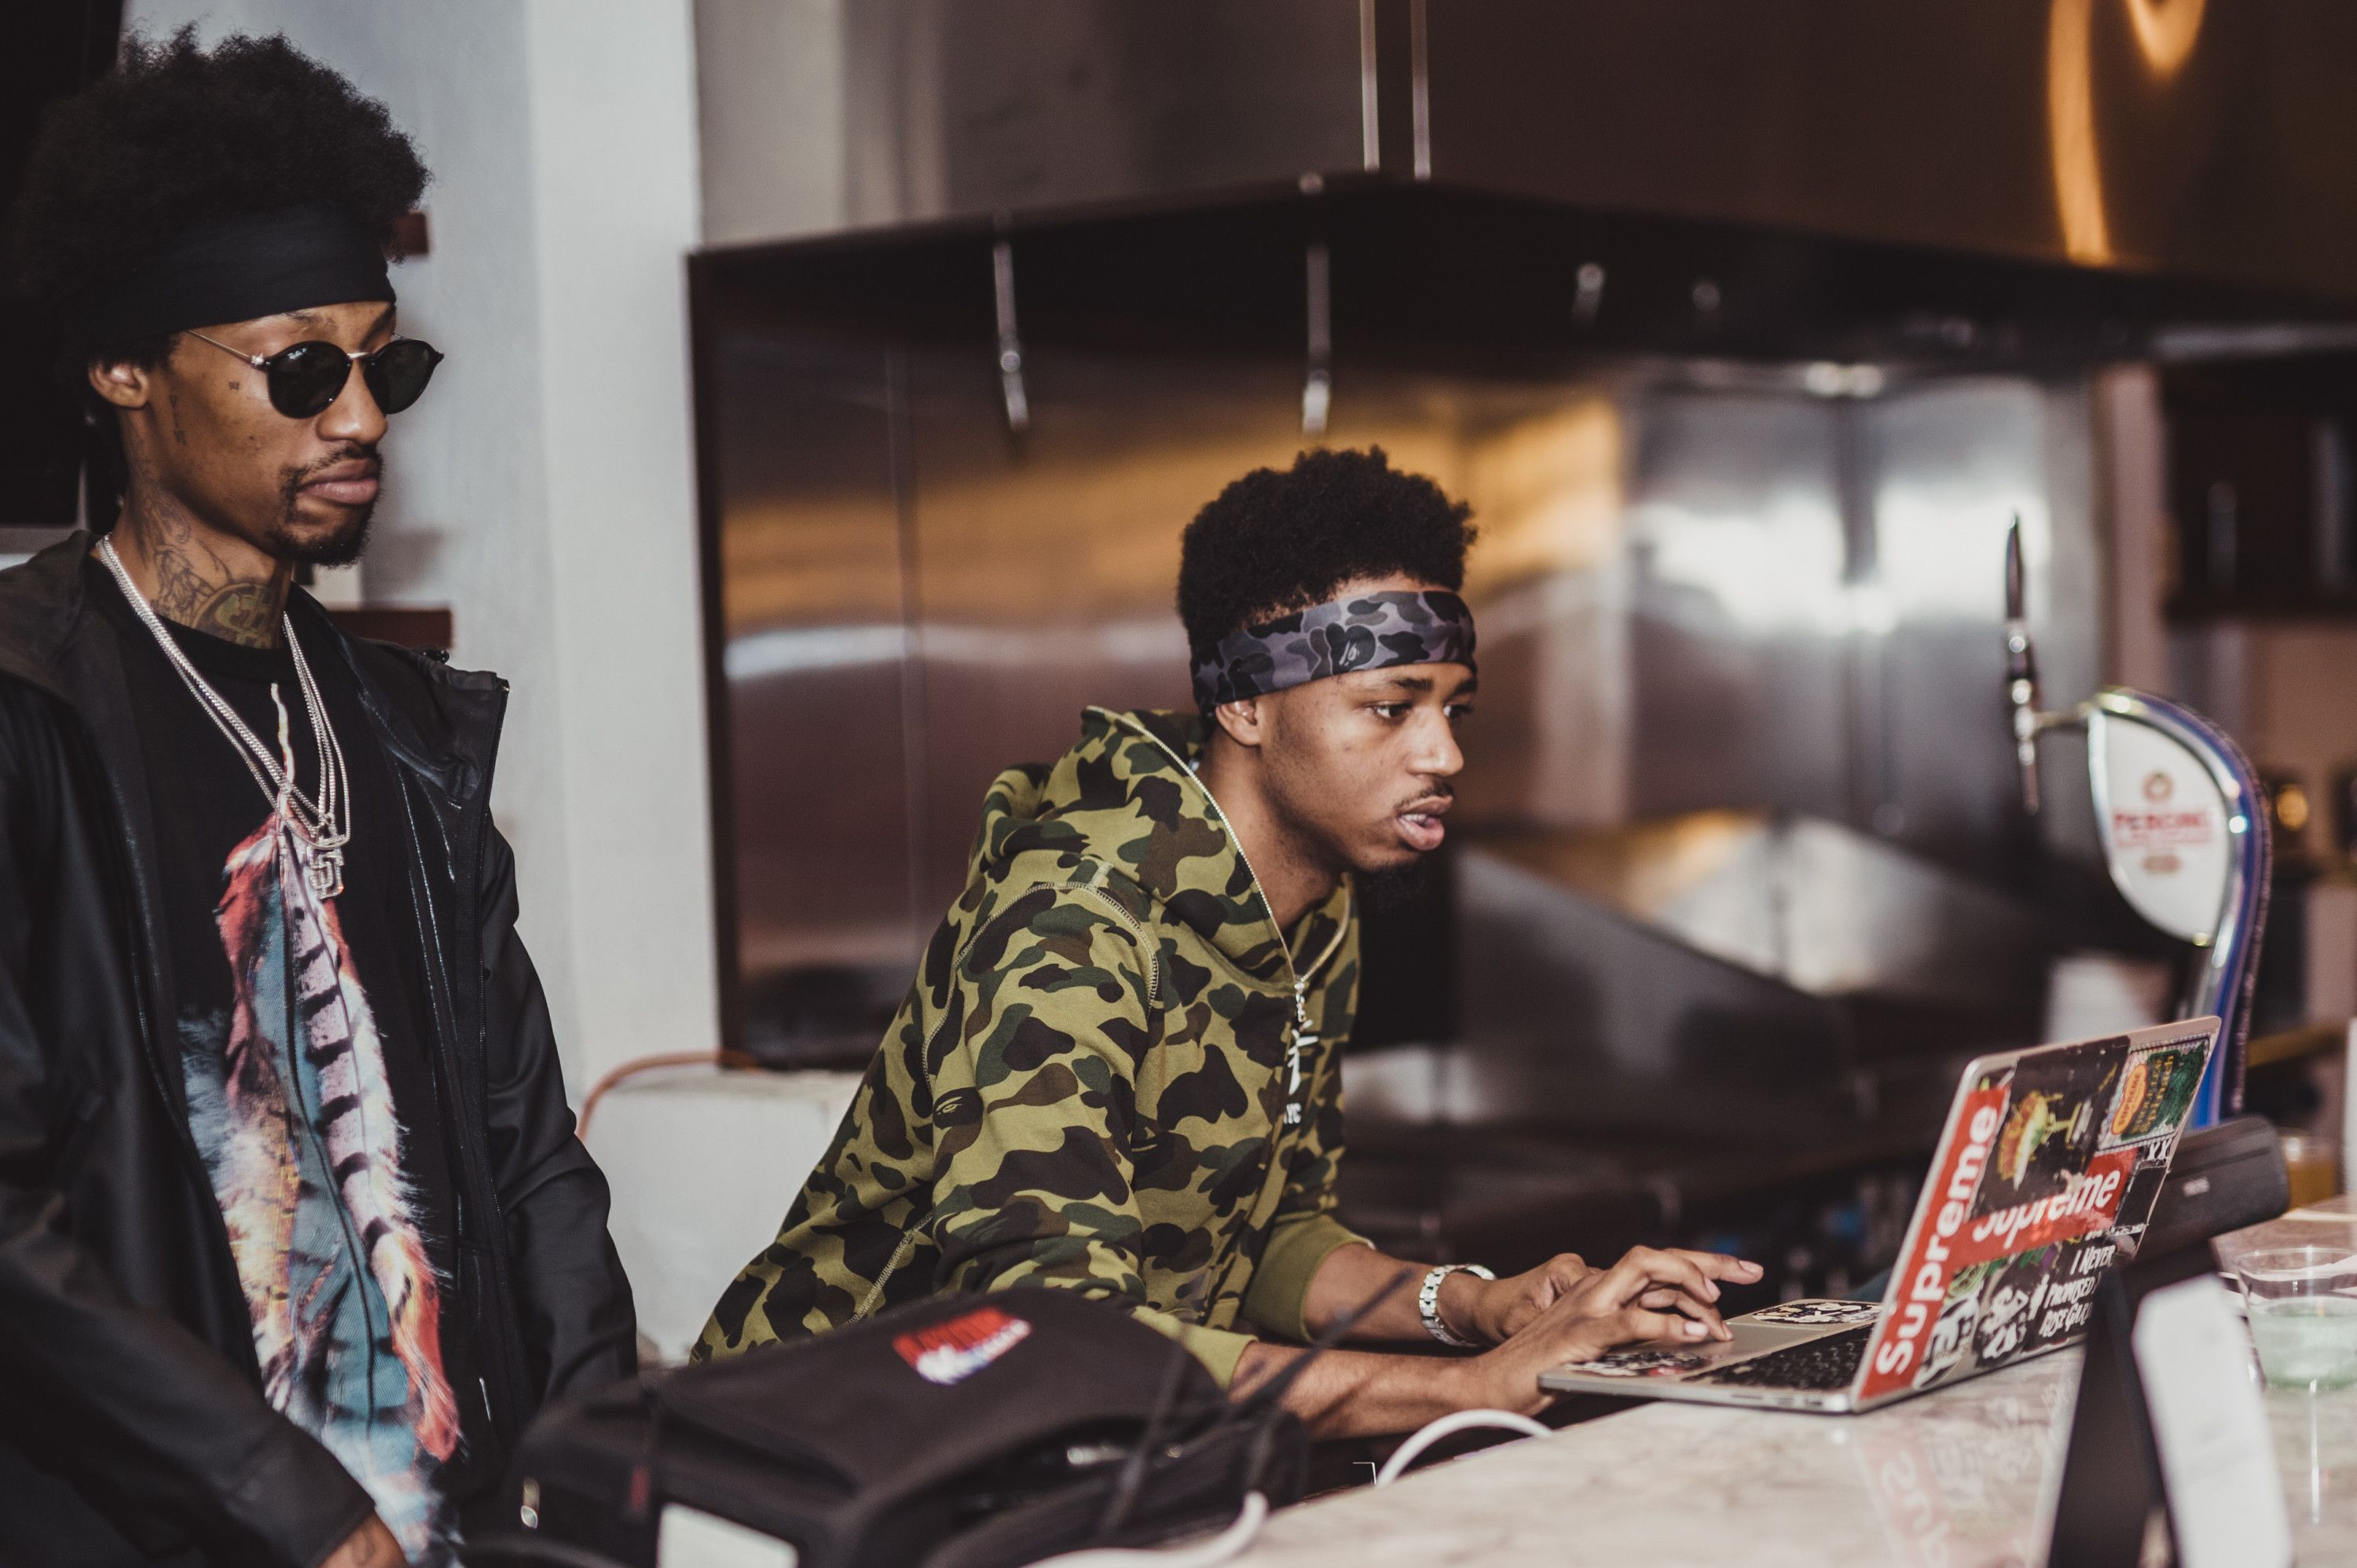 Download 21 Savage Metro Boomin Wallpaper